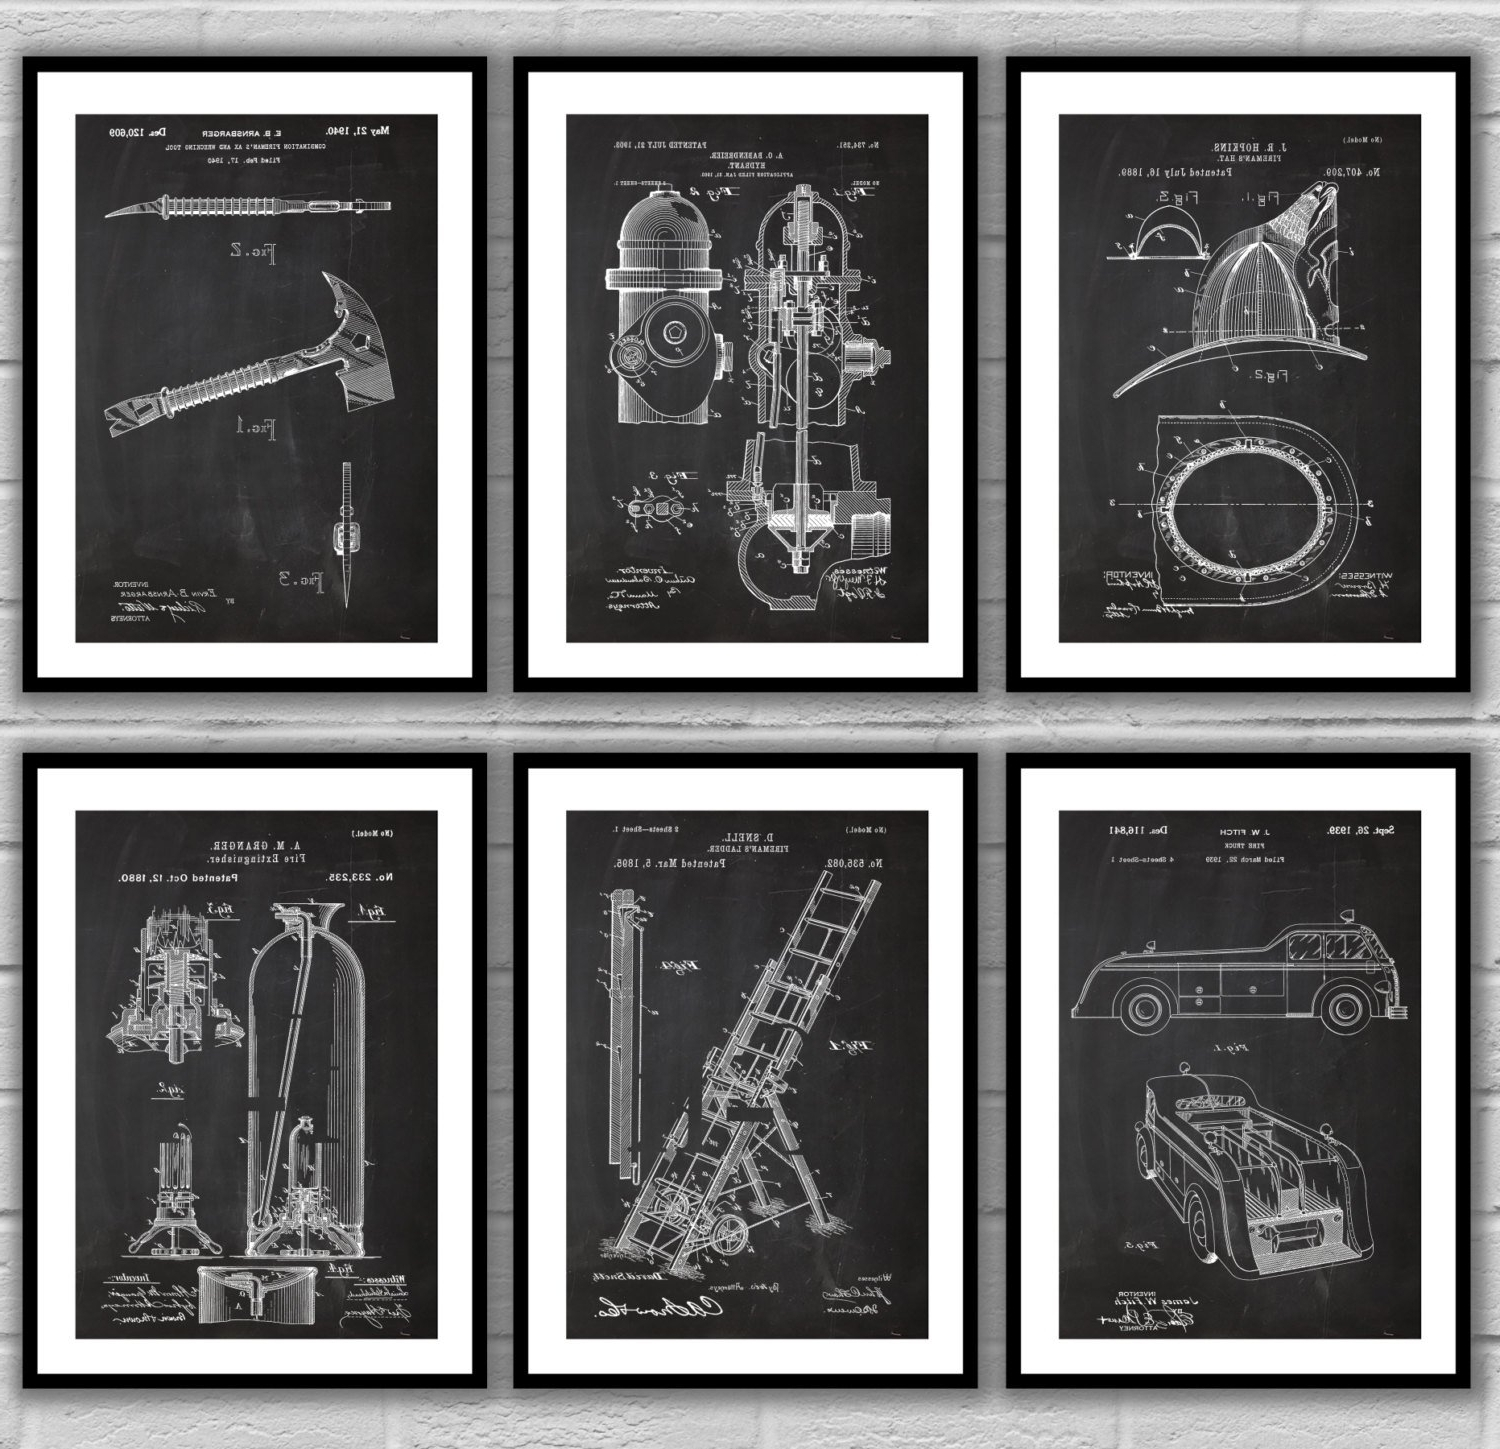 Fire Man Patent Posters, Firefighter Patent, Fire Truck Wall Art With Regard To Best And Newest Firefighter Wall Art (View 4 of 15)